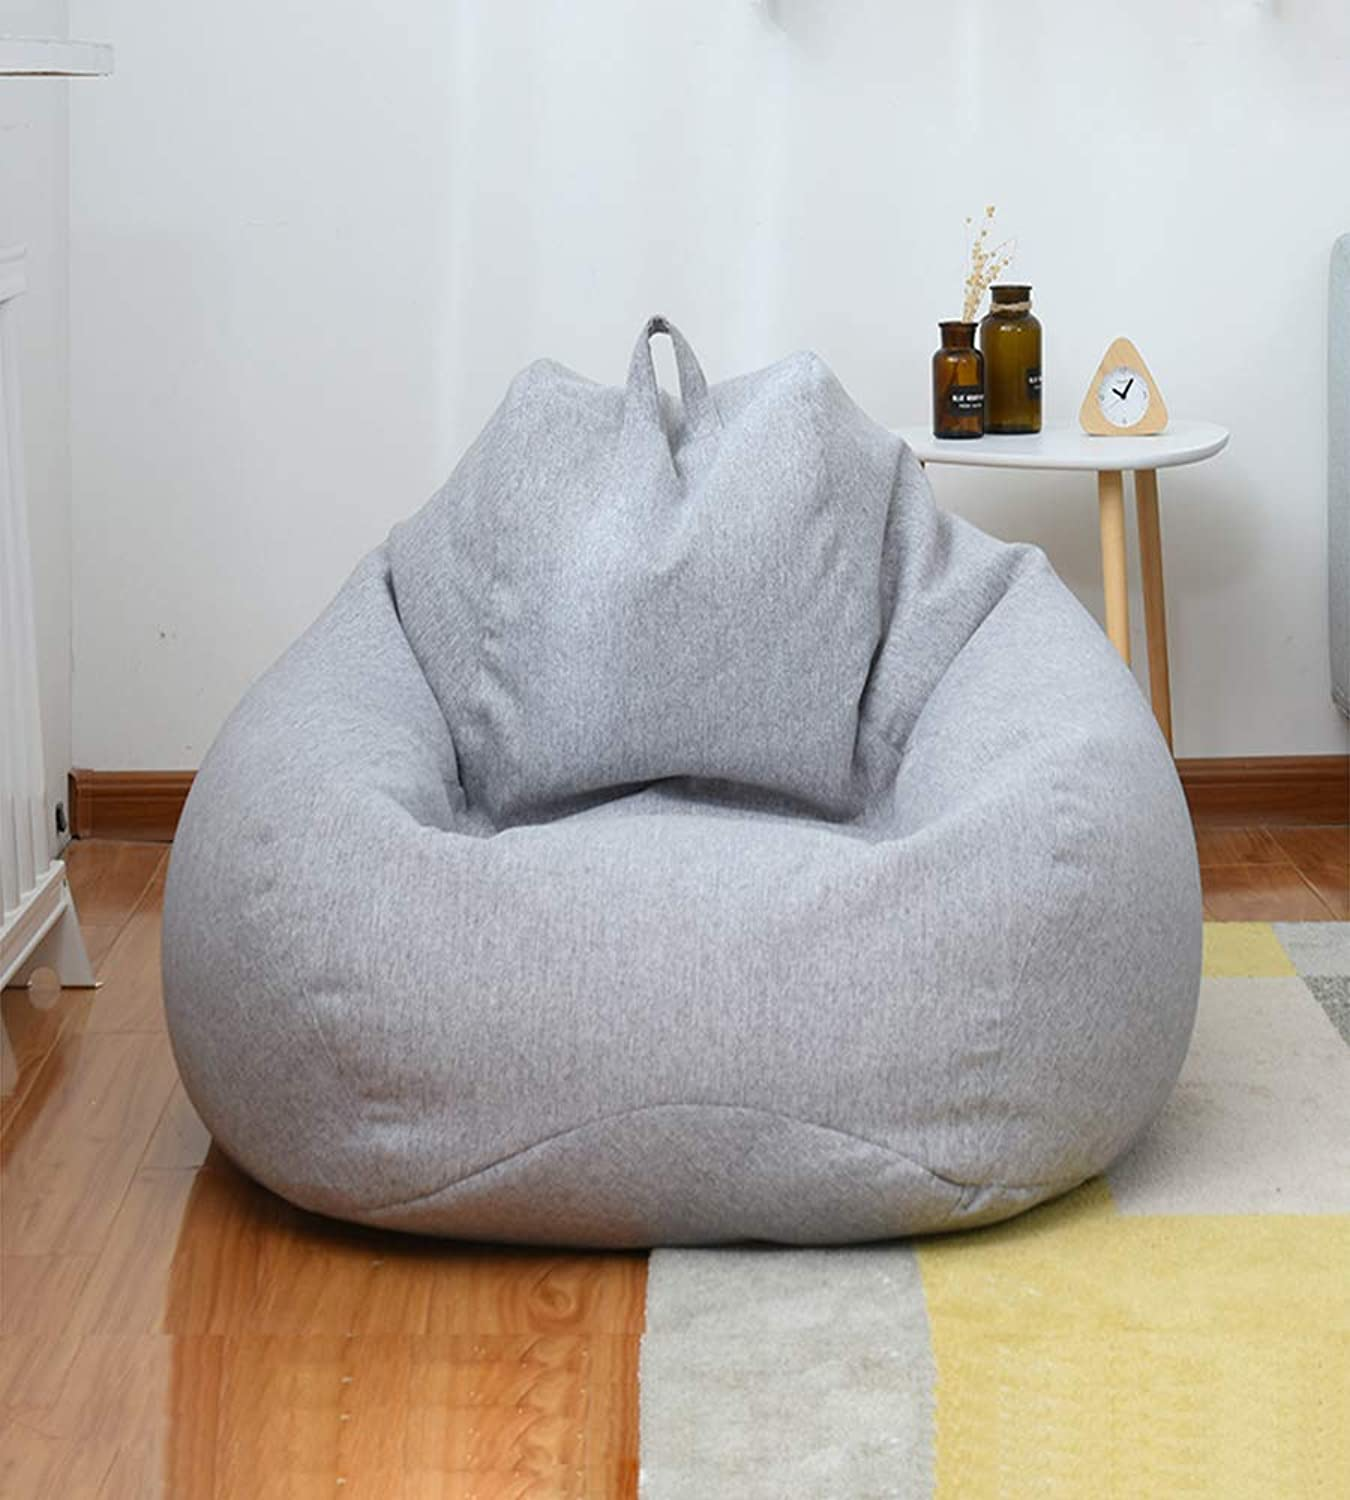 Beanbag Chair for Indoor and Outdoor Use, Great for Gaming Chair and Garden Chair,009,80cmx90cm 2.6ftx2.9ft